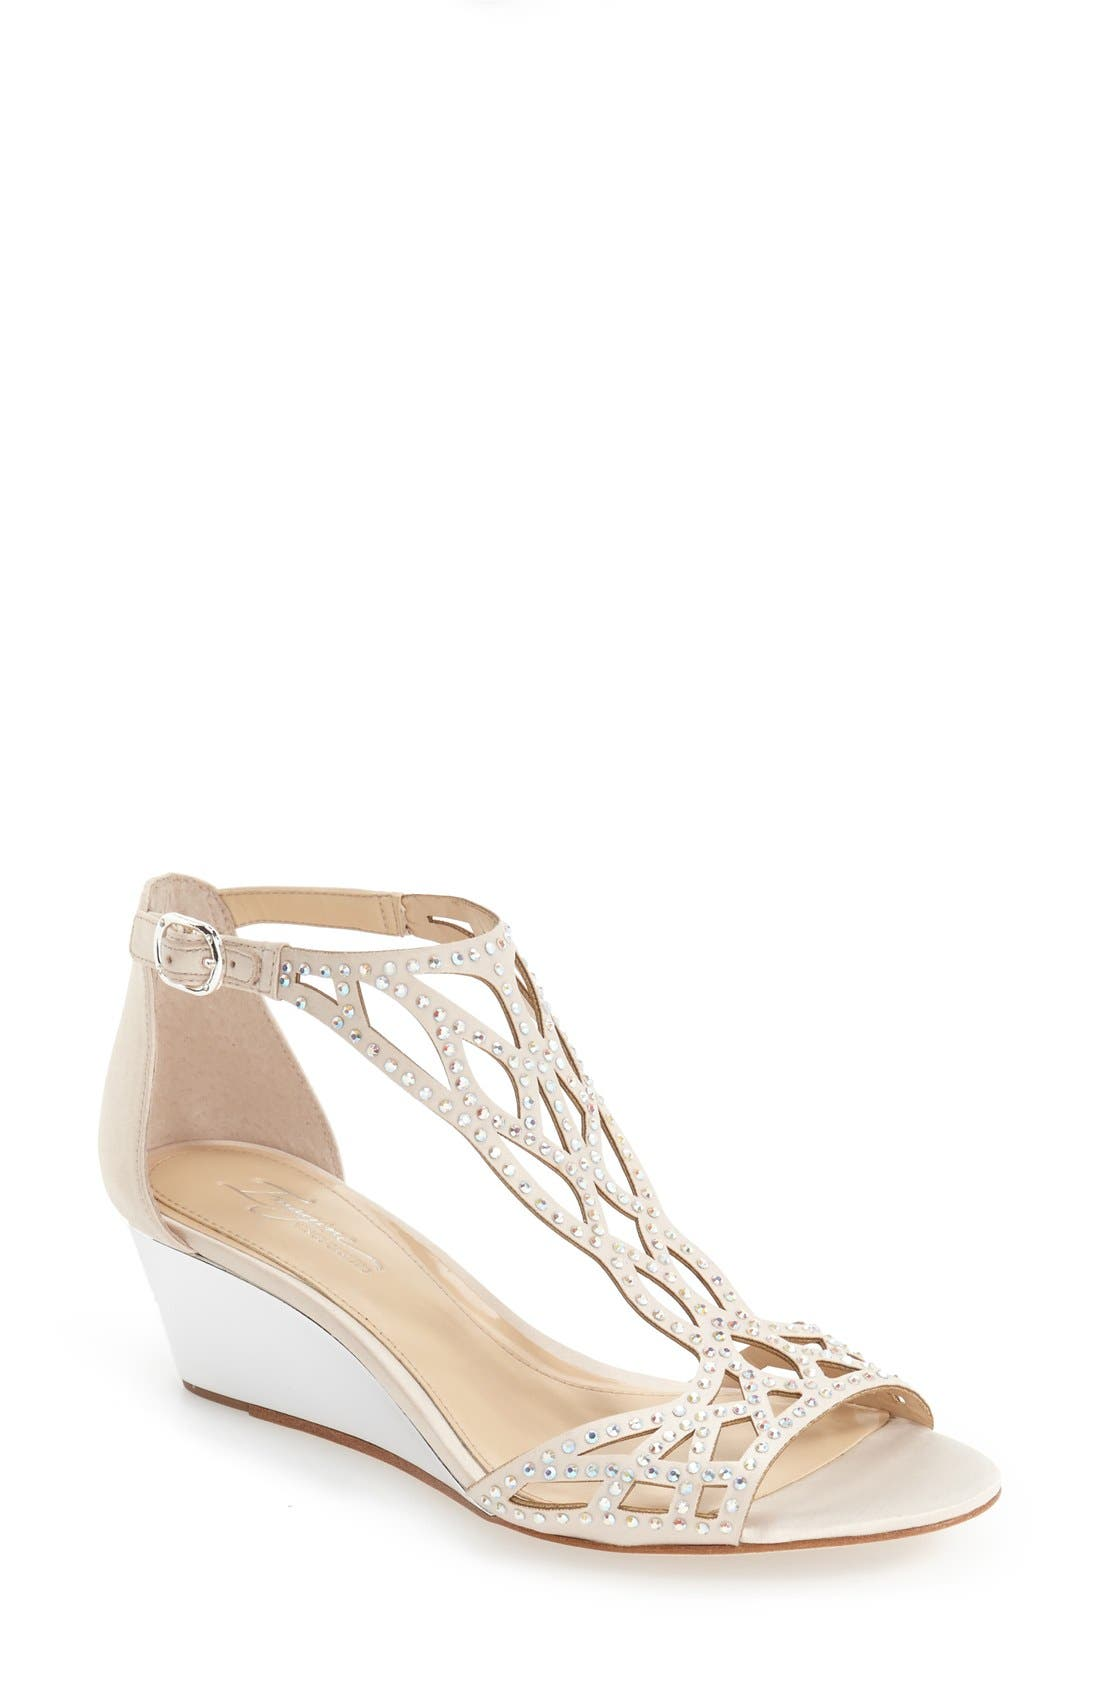 'Jalen' Wedge Sandal,                         Main,                         color, VANILLA SATIN